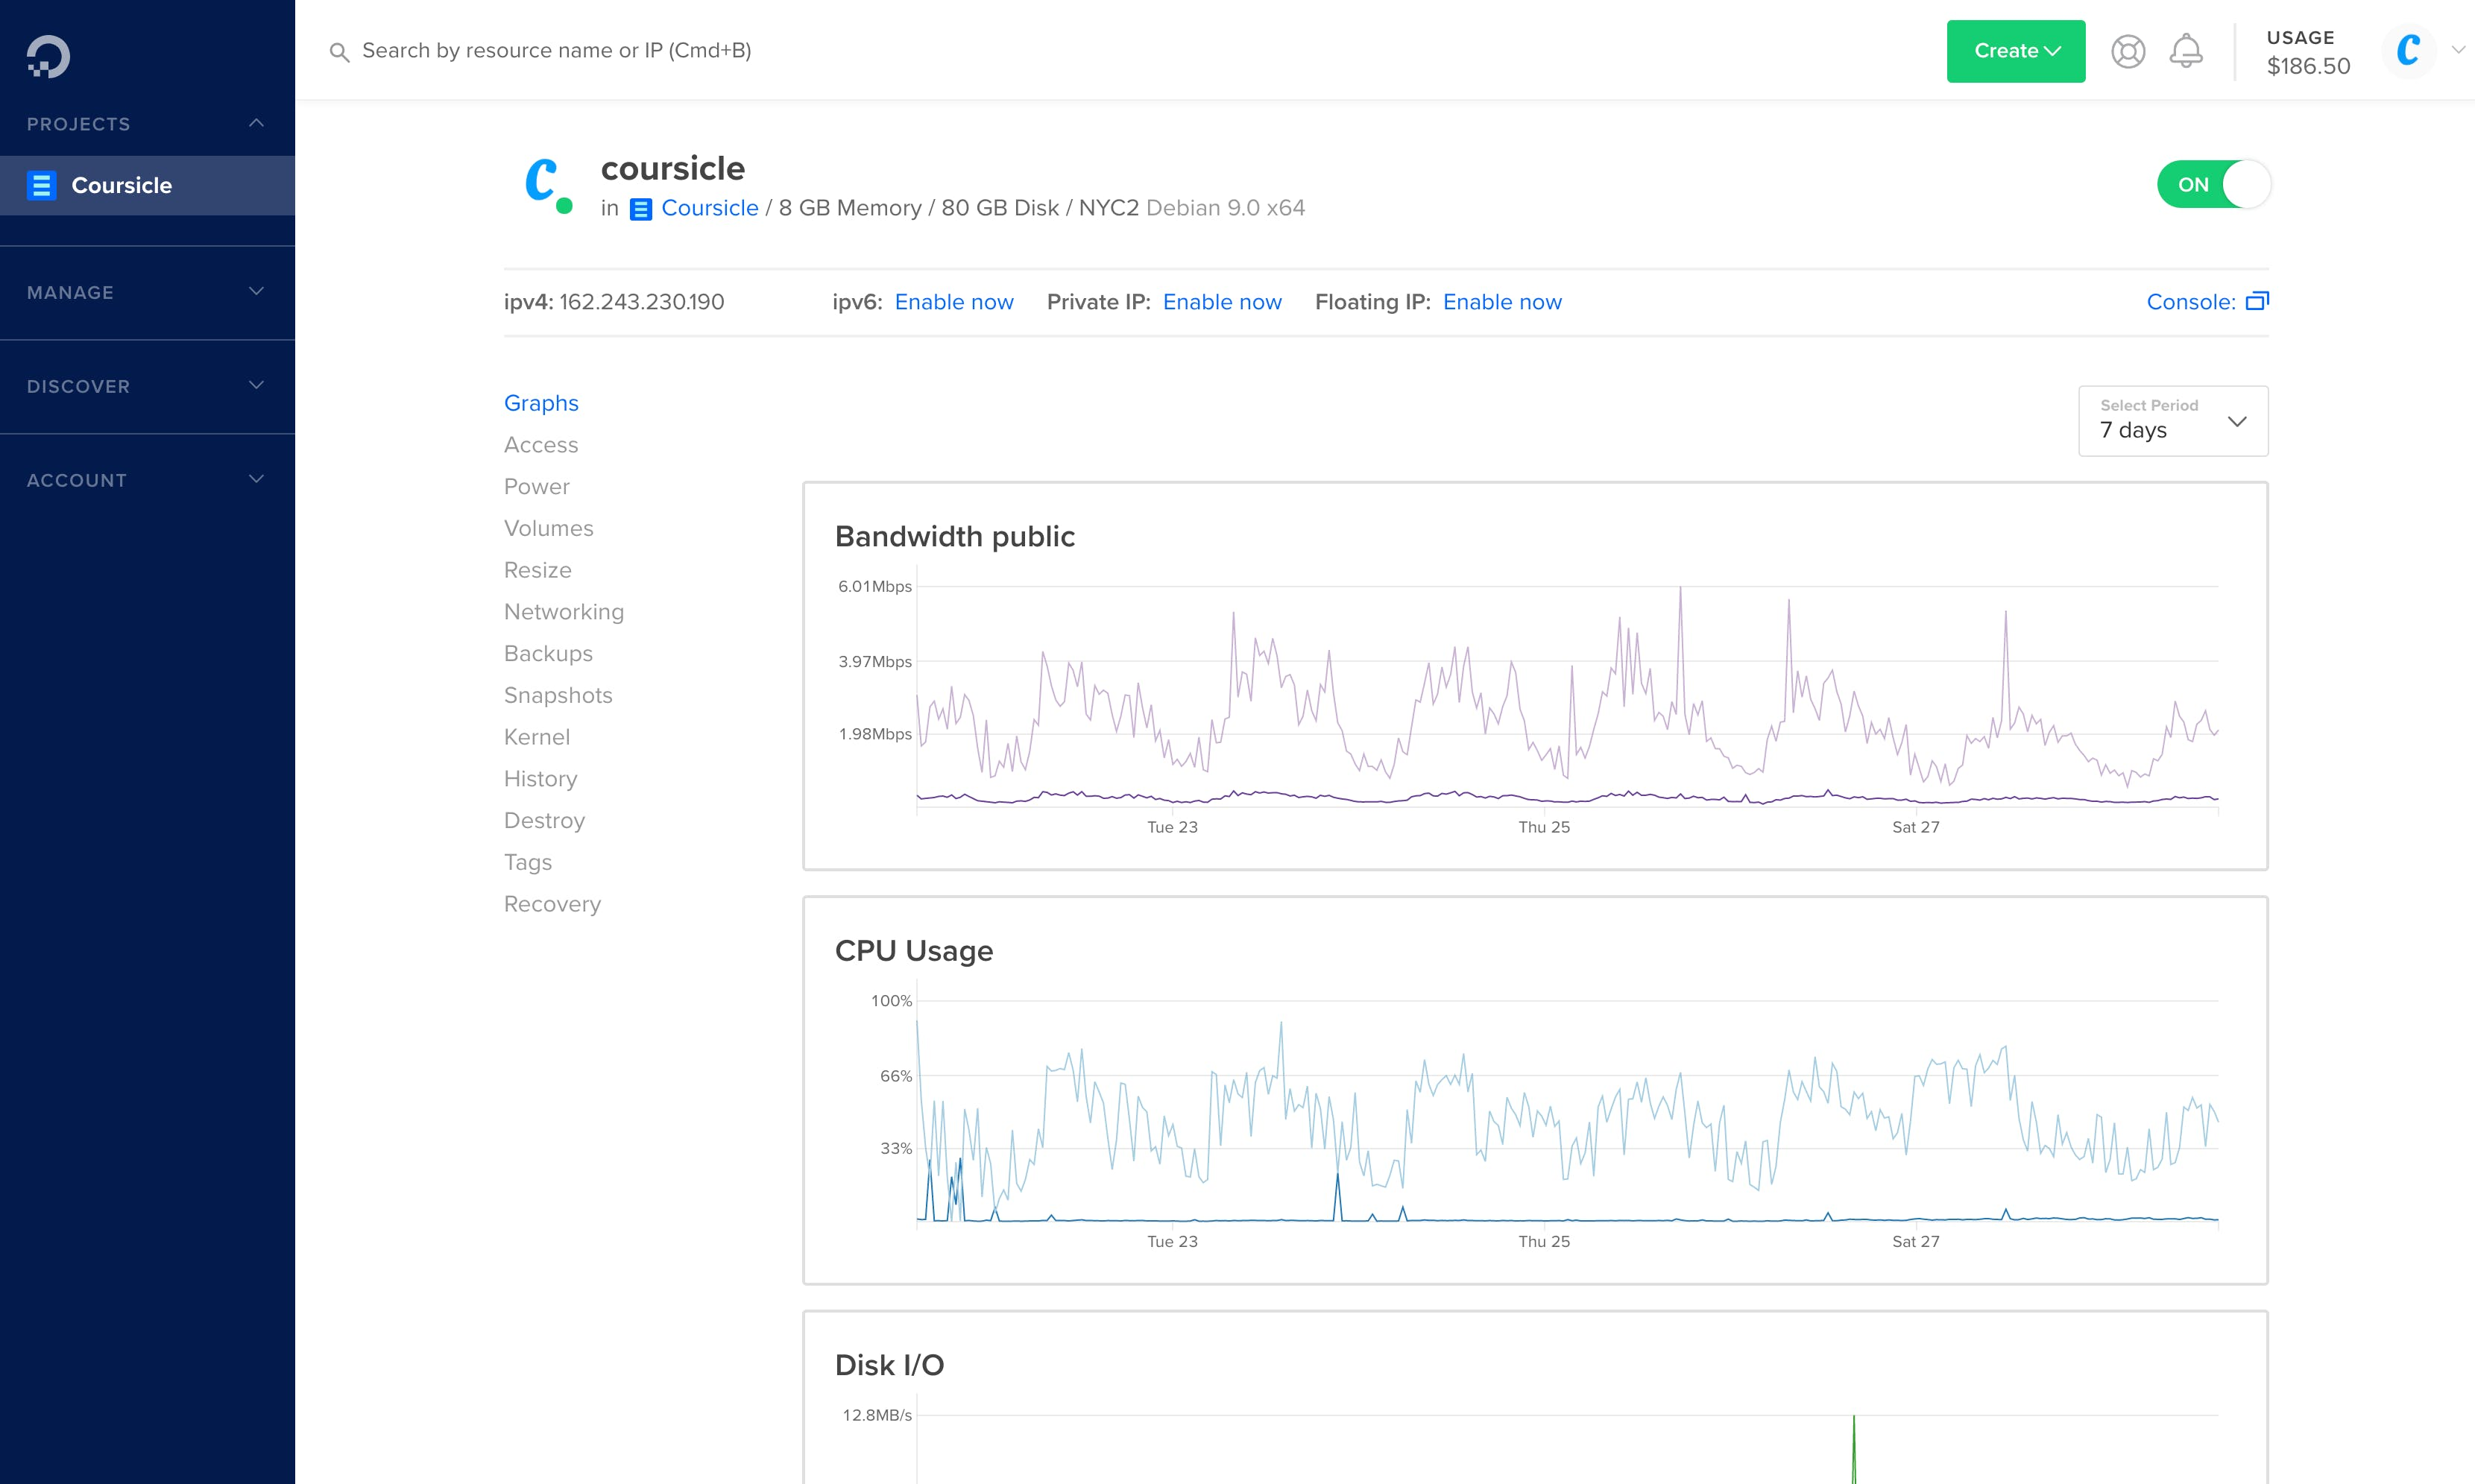 Coursicle DigitalOcean dashboard